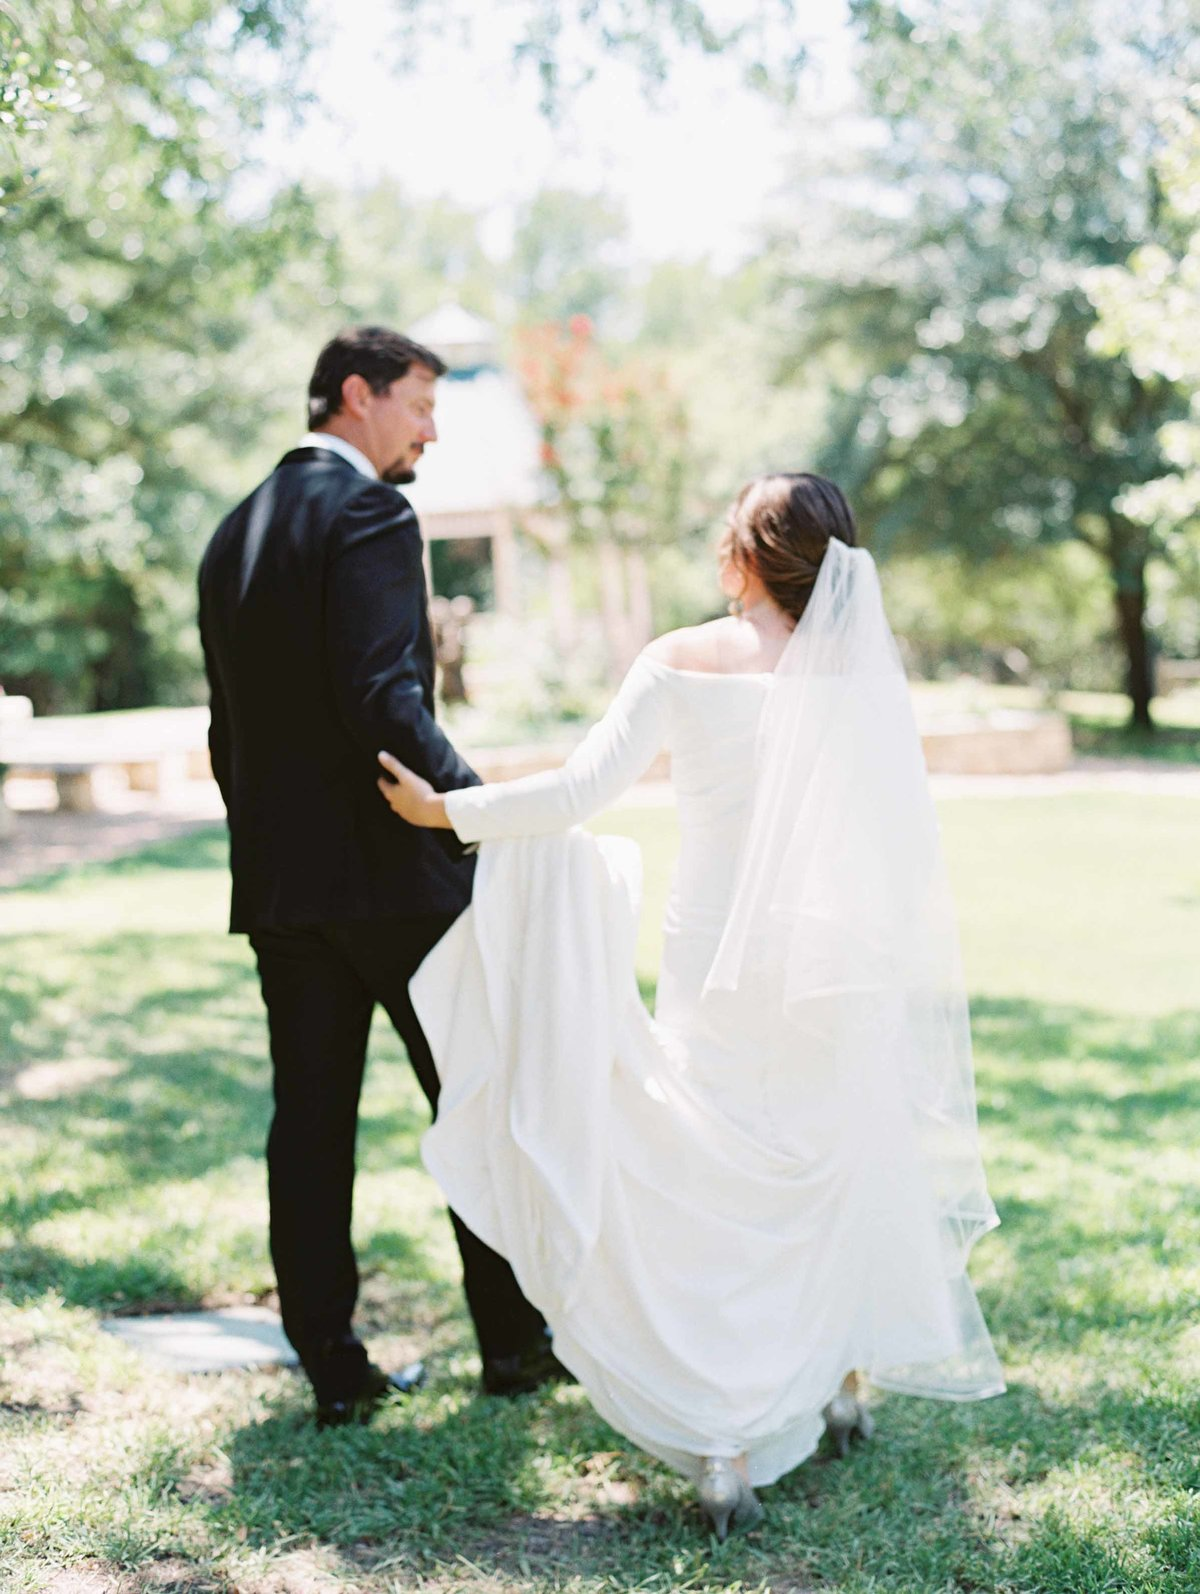 Angel_owens_photography_wedding_oliviarobert95